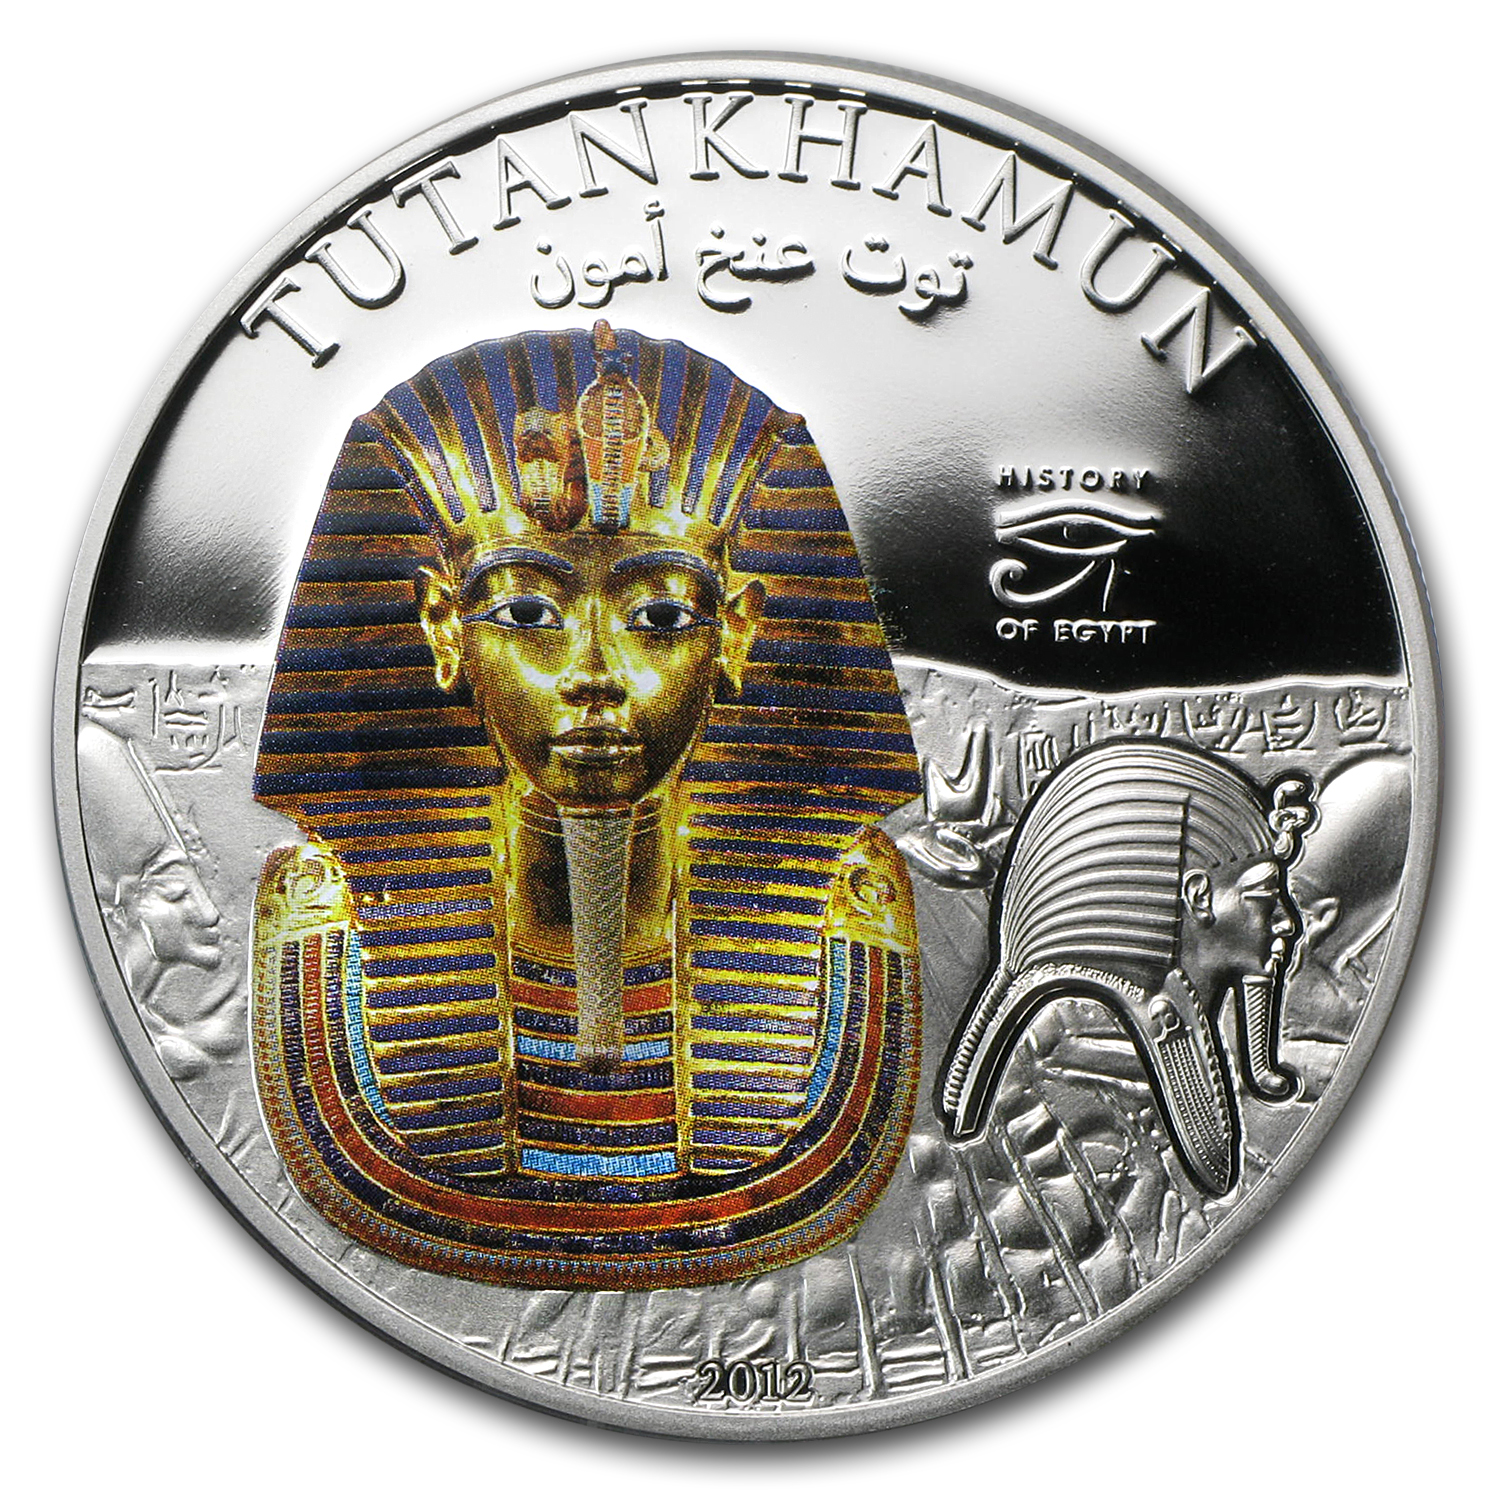 2012 Cook Islands Proof Silver $5 History of Egypt Tutankhamun